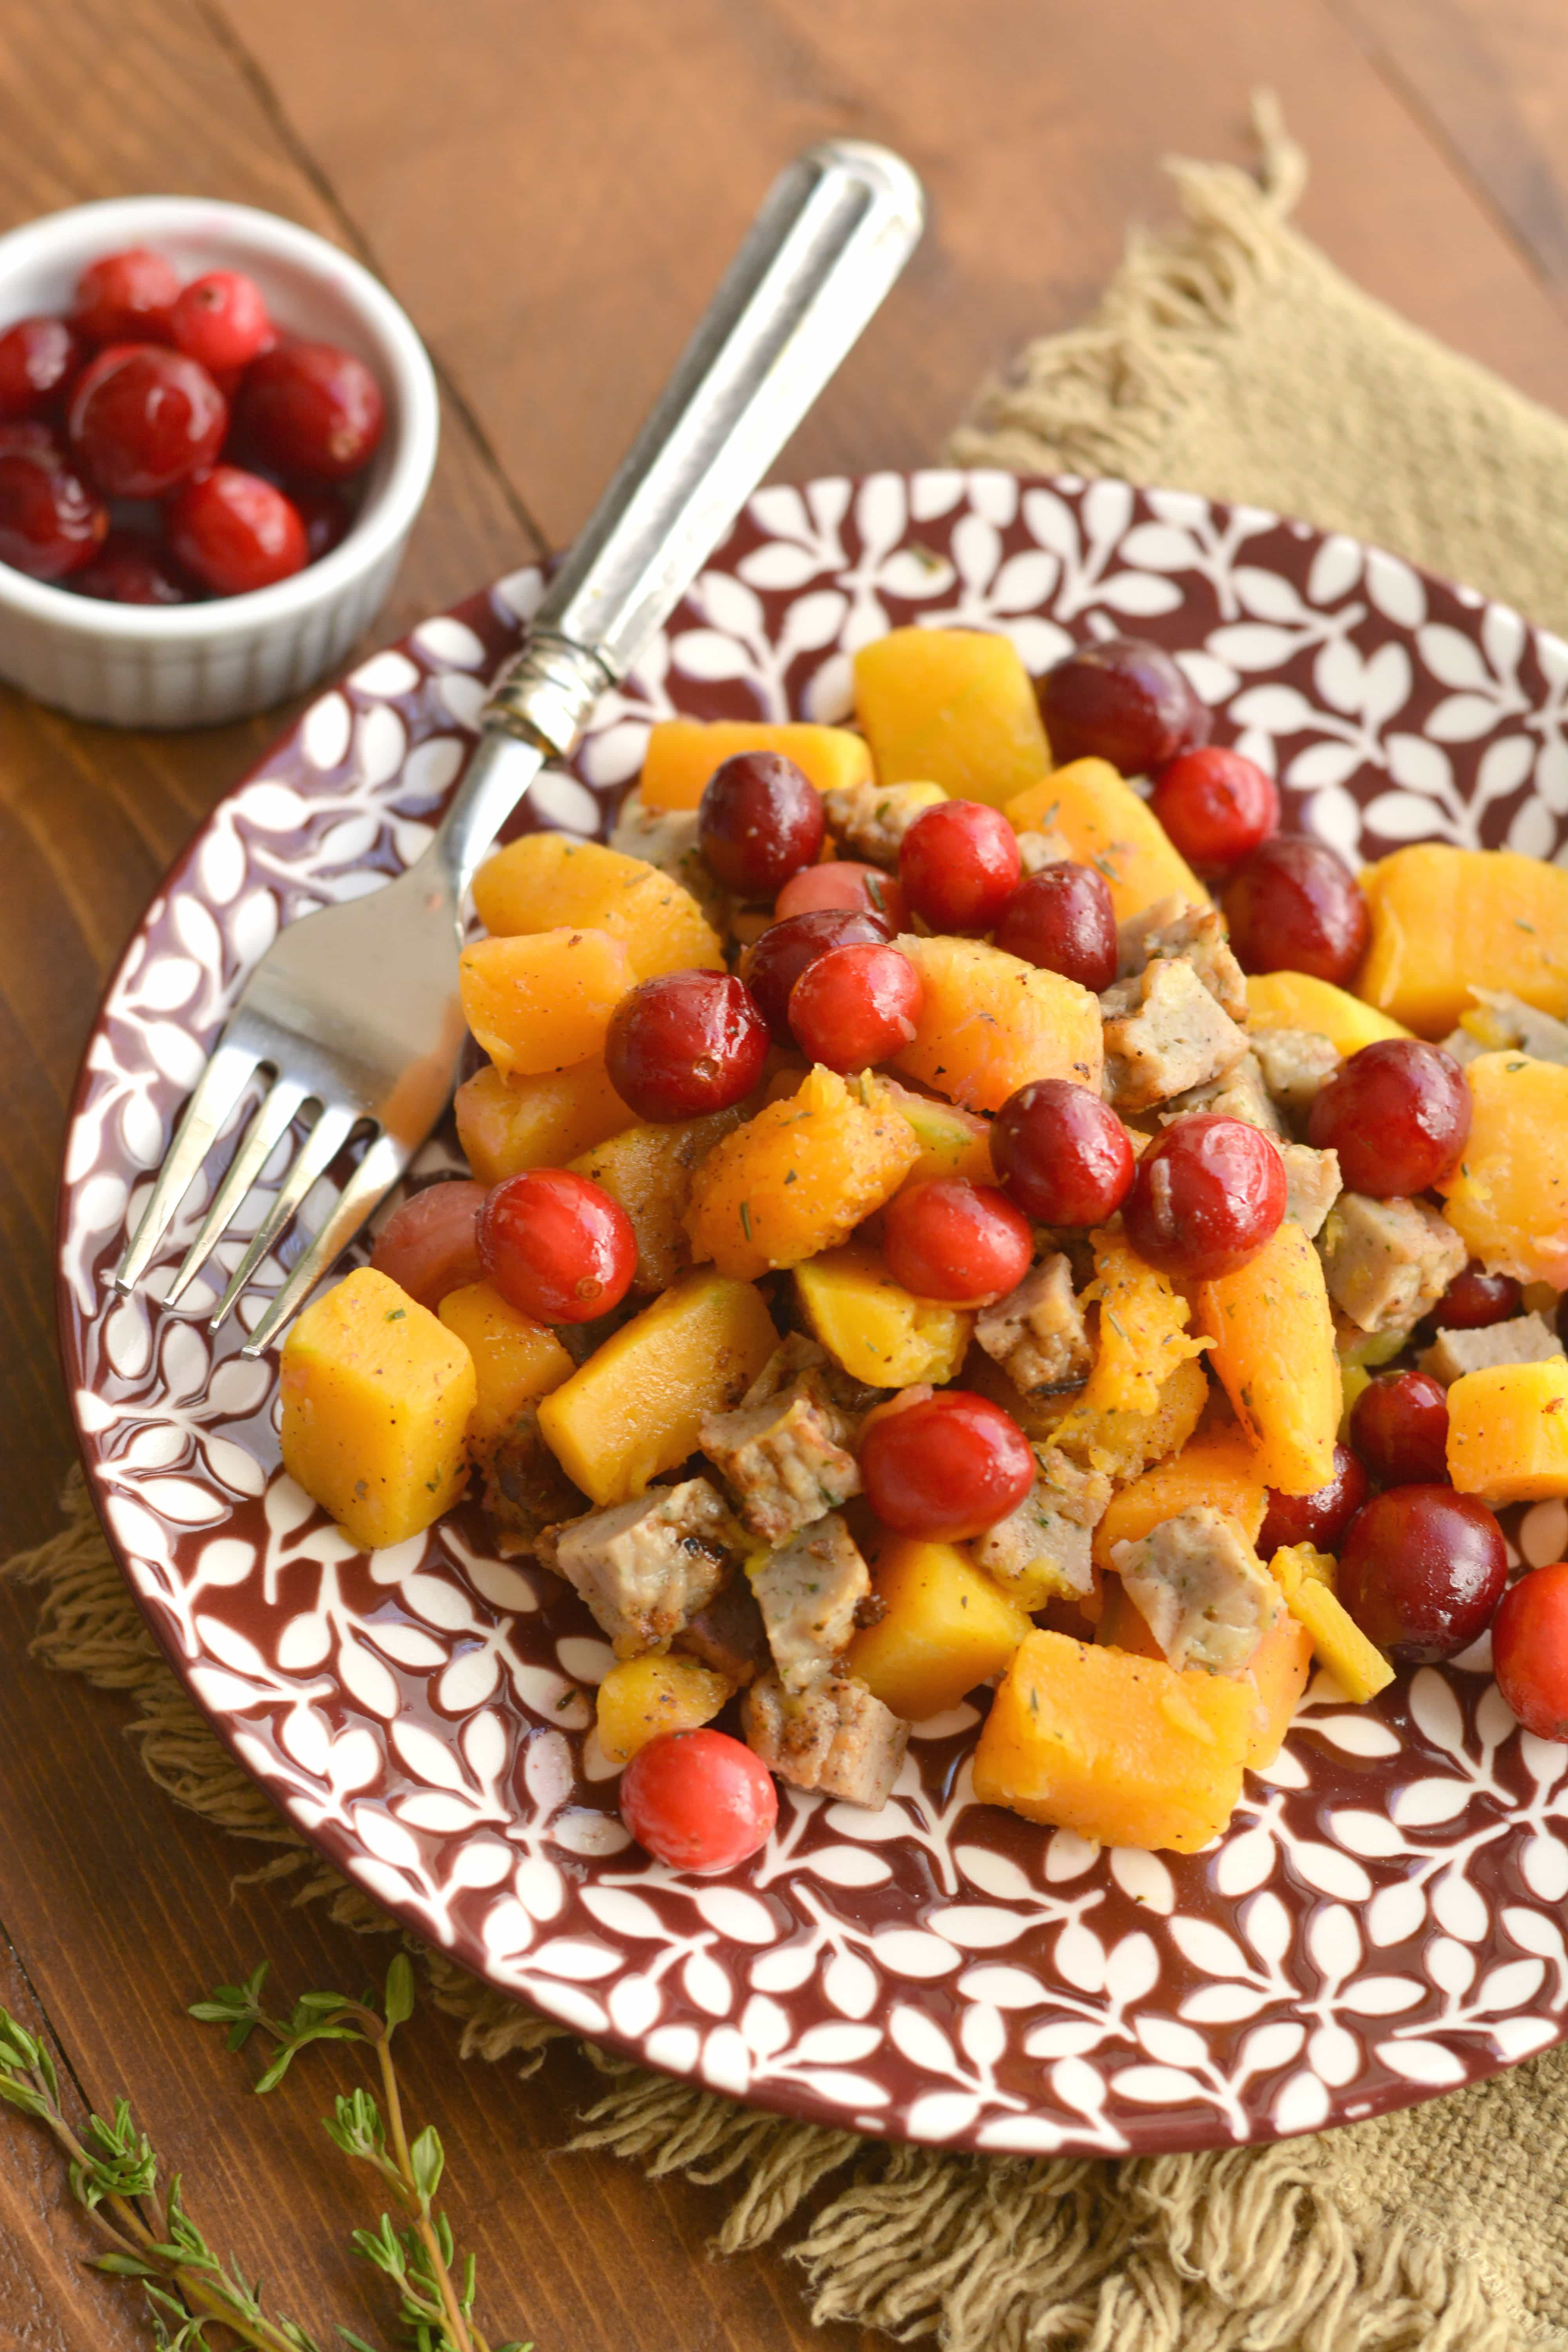 Butternut Squash and Cranberry Skillet Meal Prep Idea